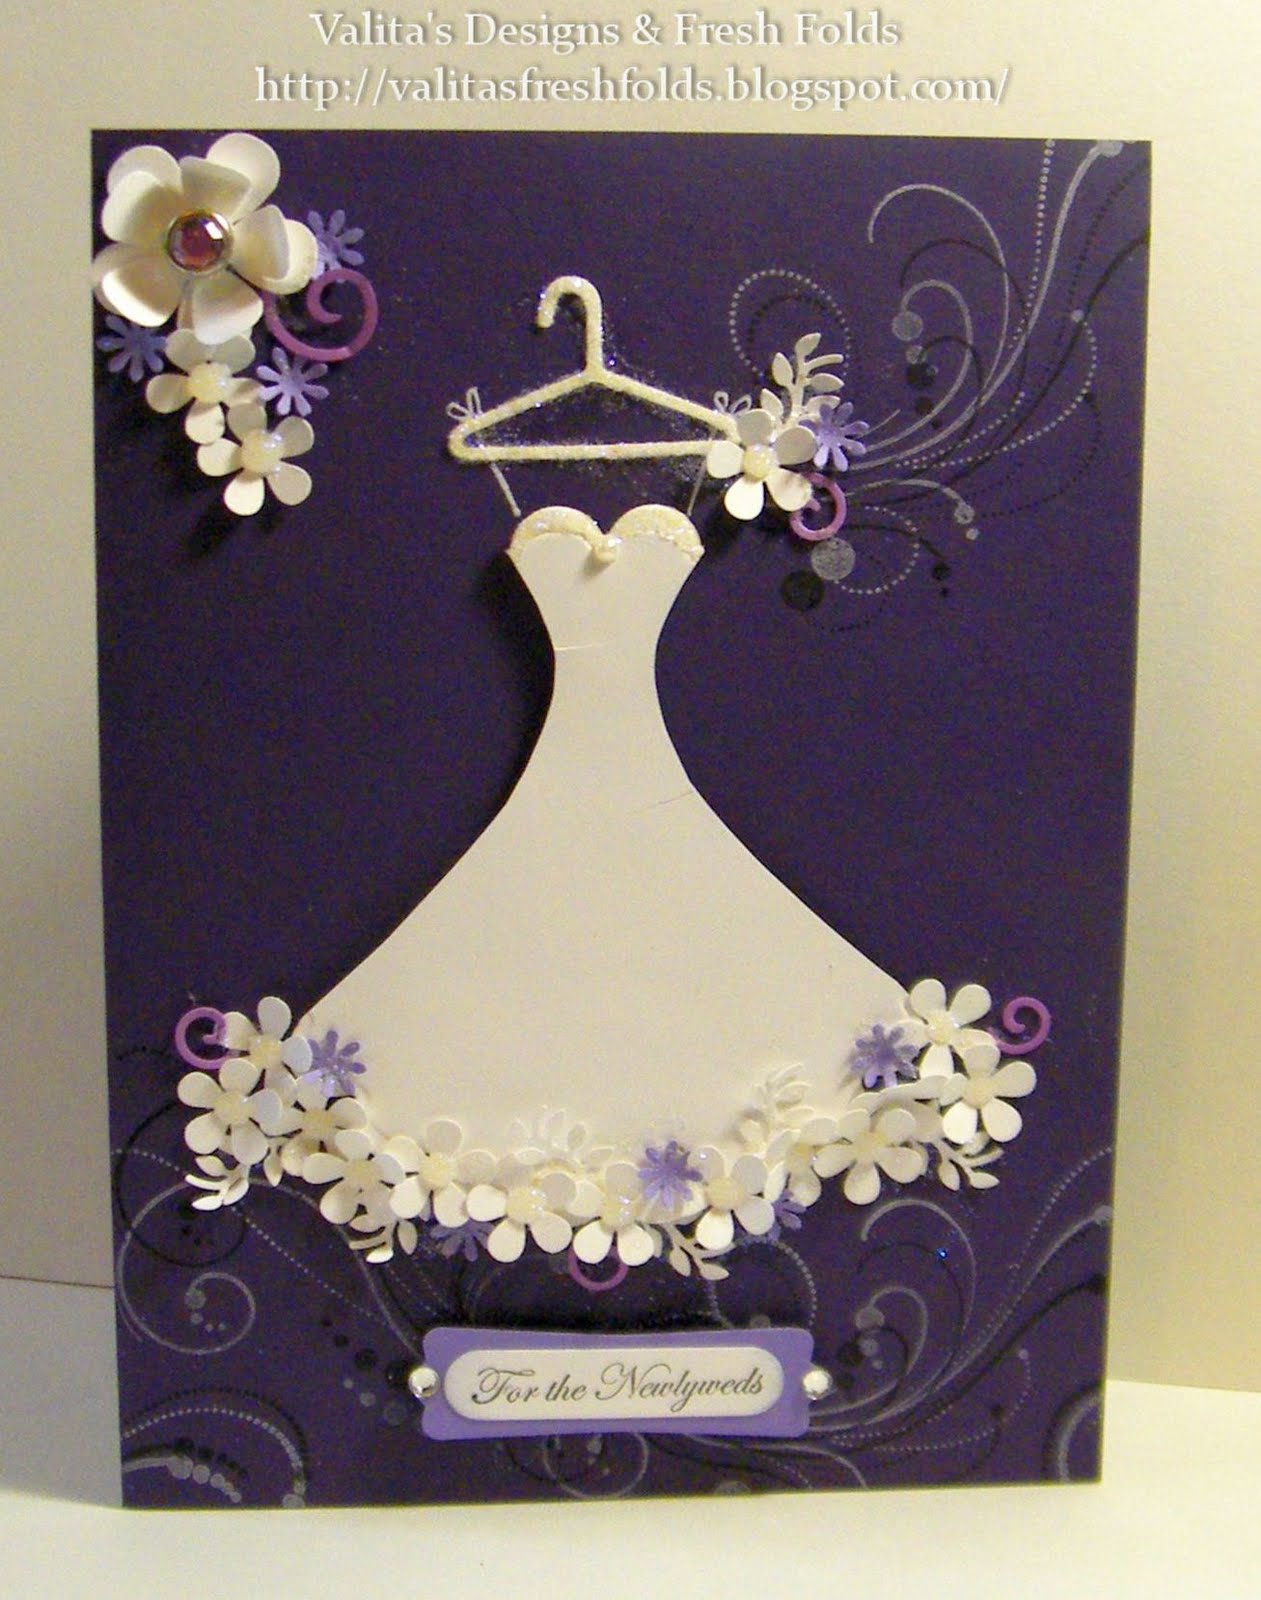 Valitas Designs Fresh Folds Wedding Dress card